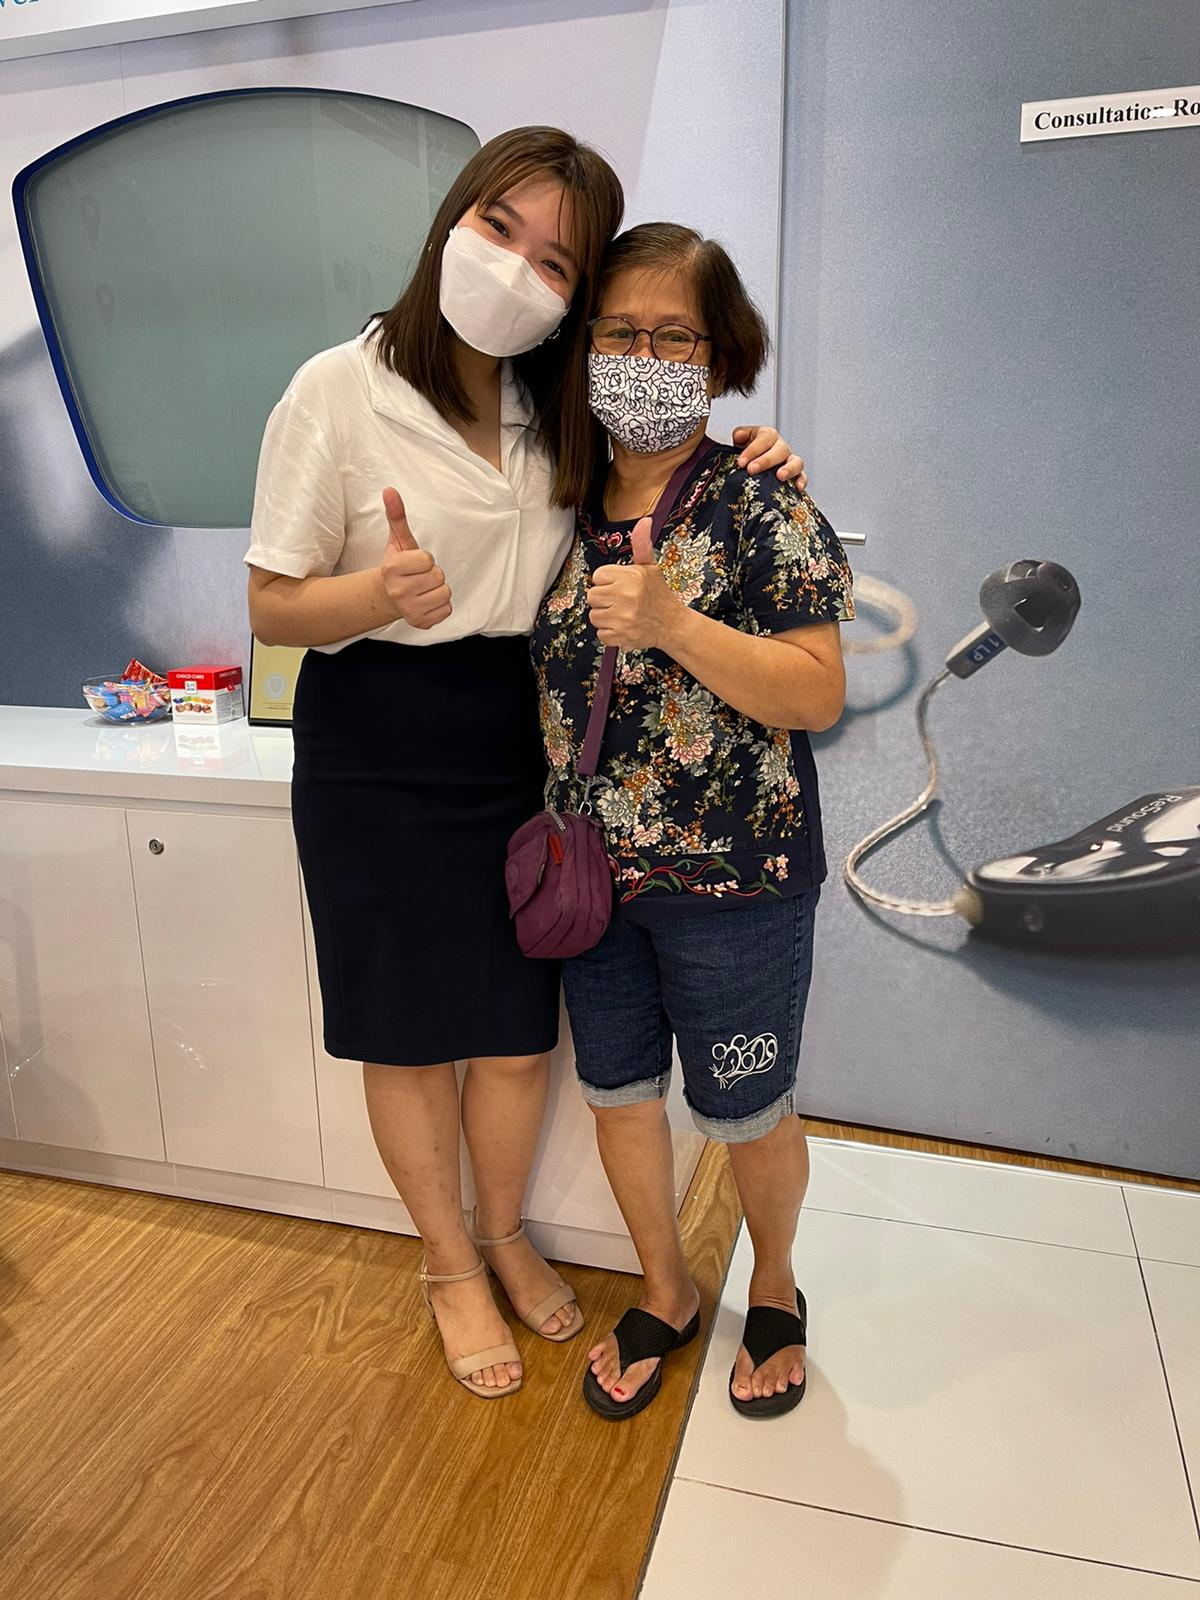 Hearing Consultant Faith with patient at Serangoon Hearing centre